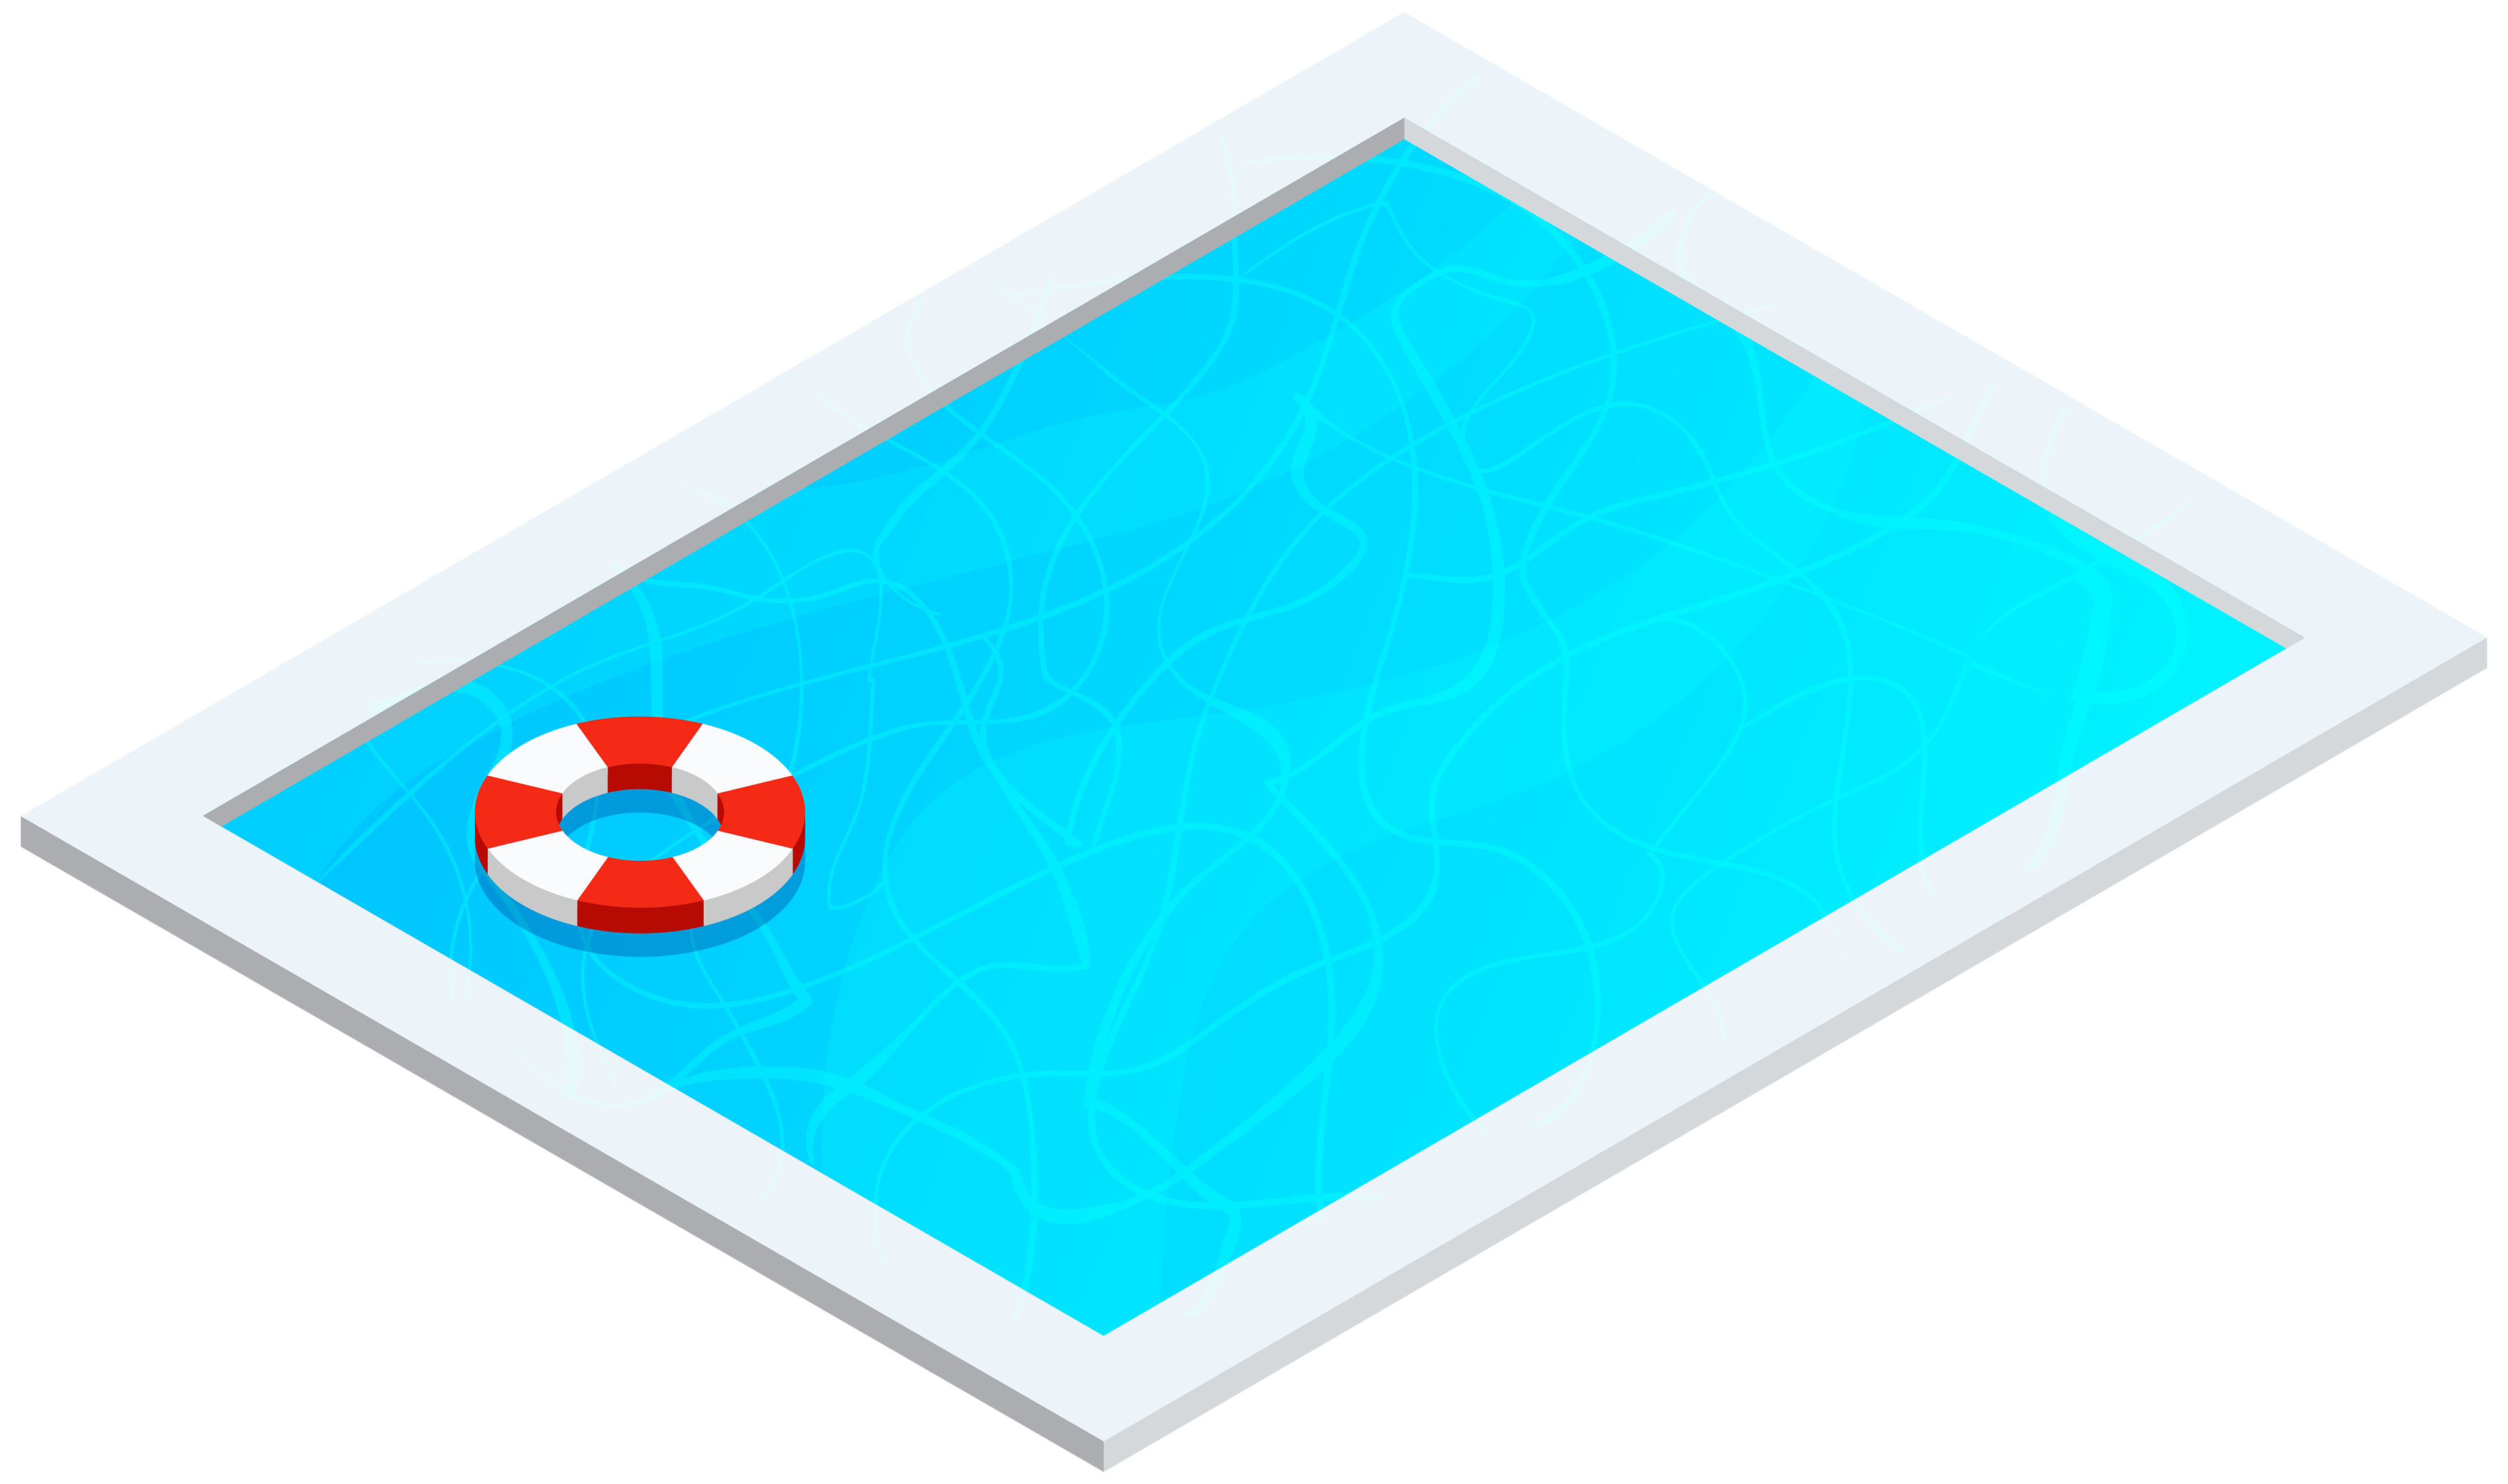 Swimming png best web. House clipart pool